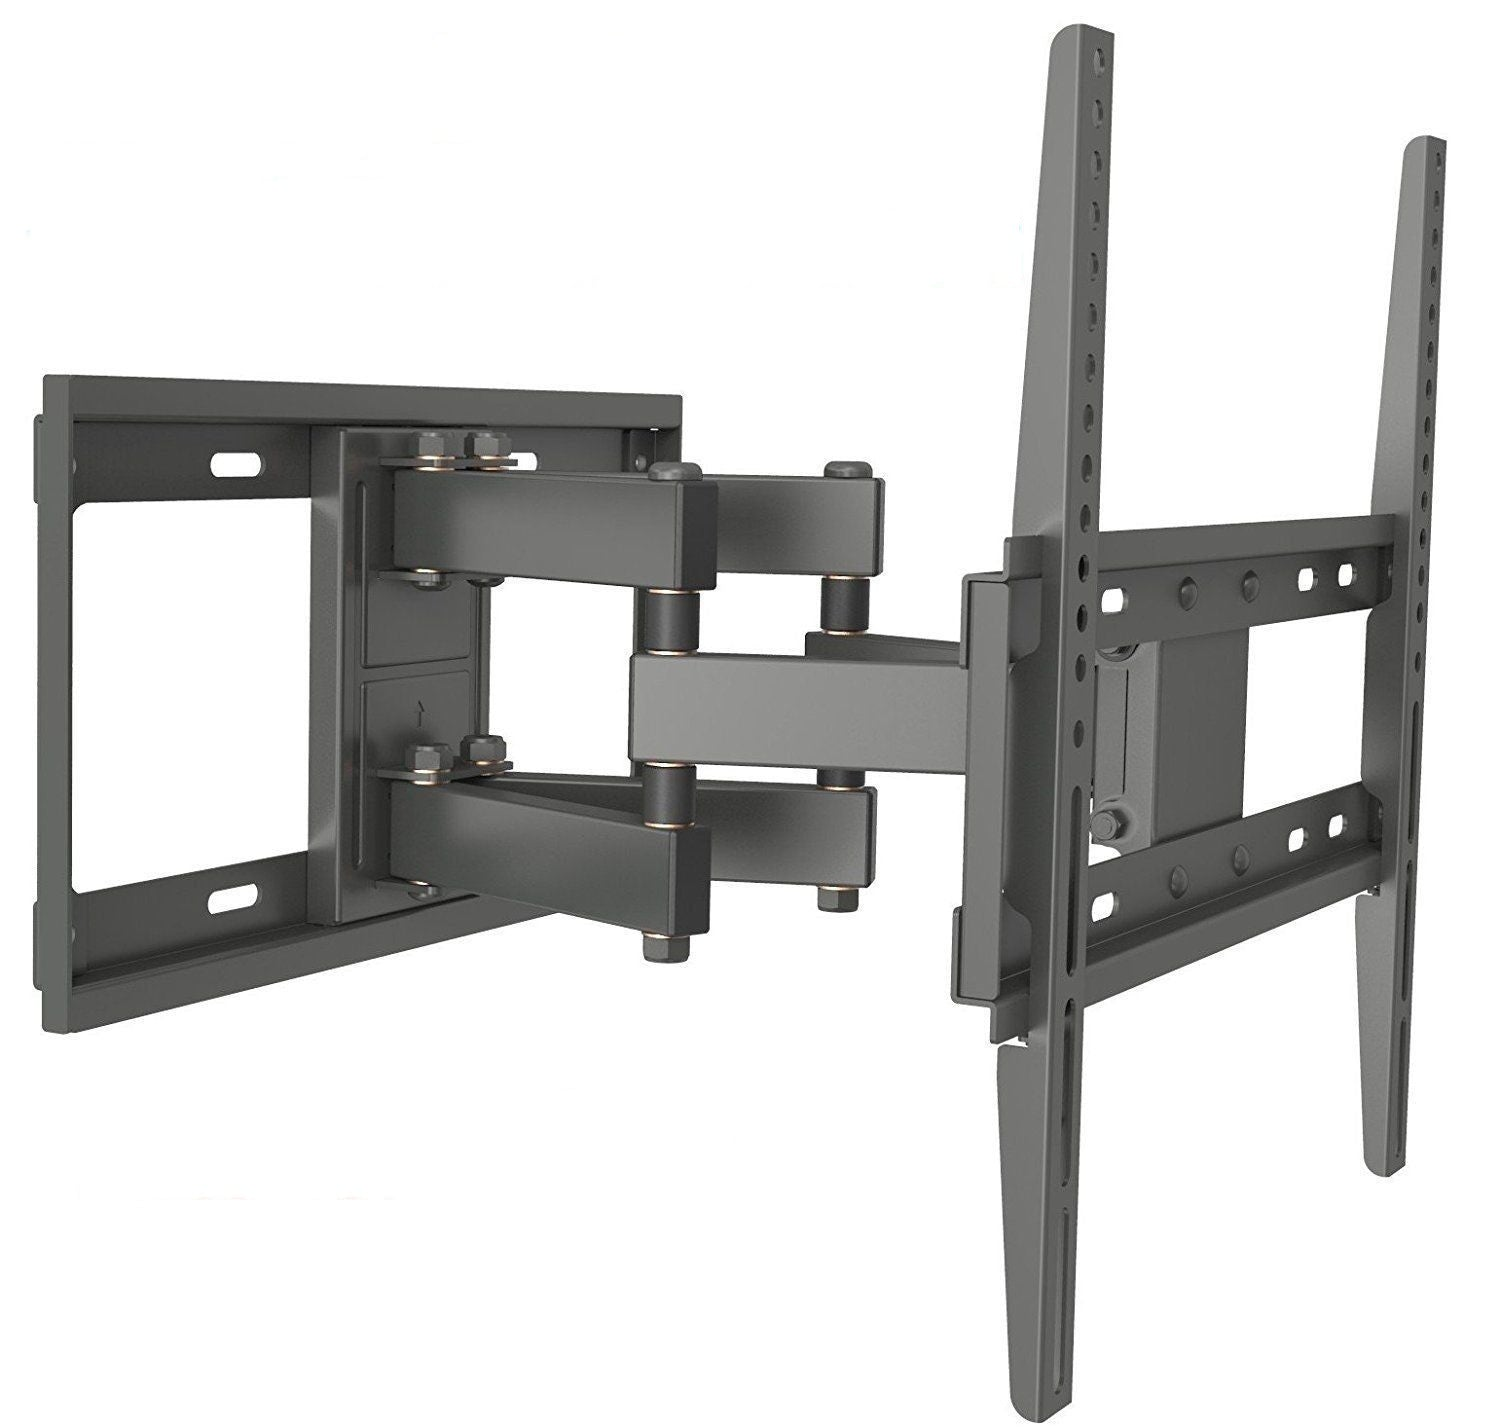 085431408d4b5 Double Arm LED LCD Full Motion Swivel TV Bracket Fits sizes 32 – 55 Inch